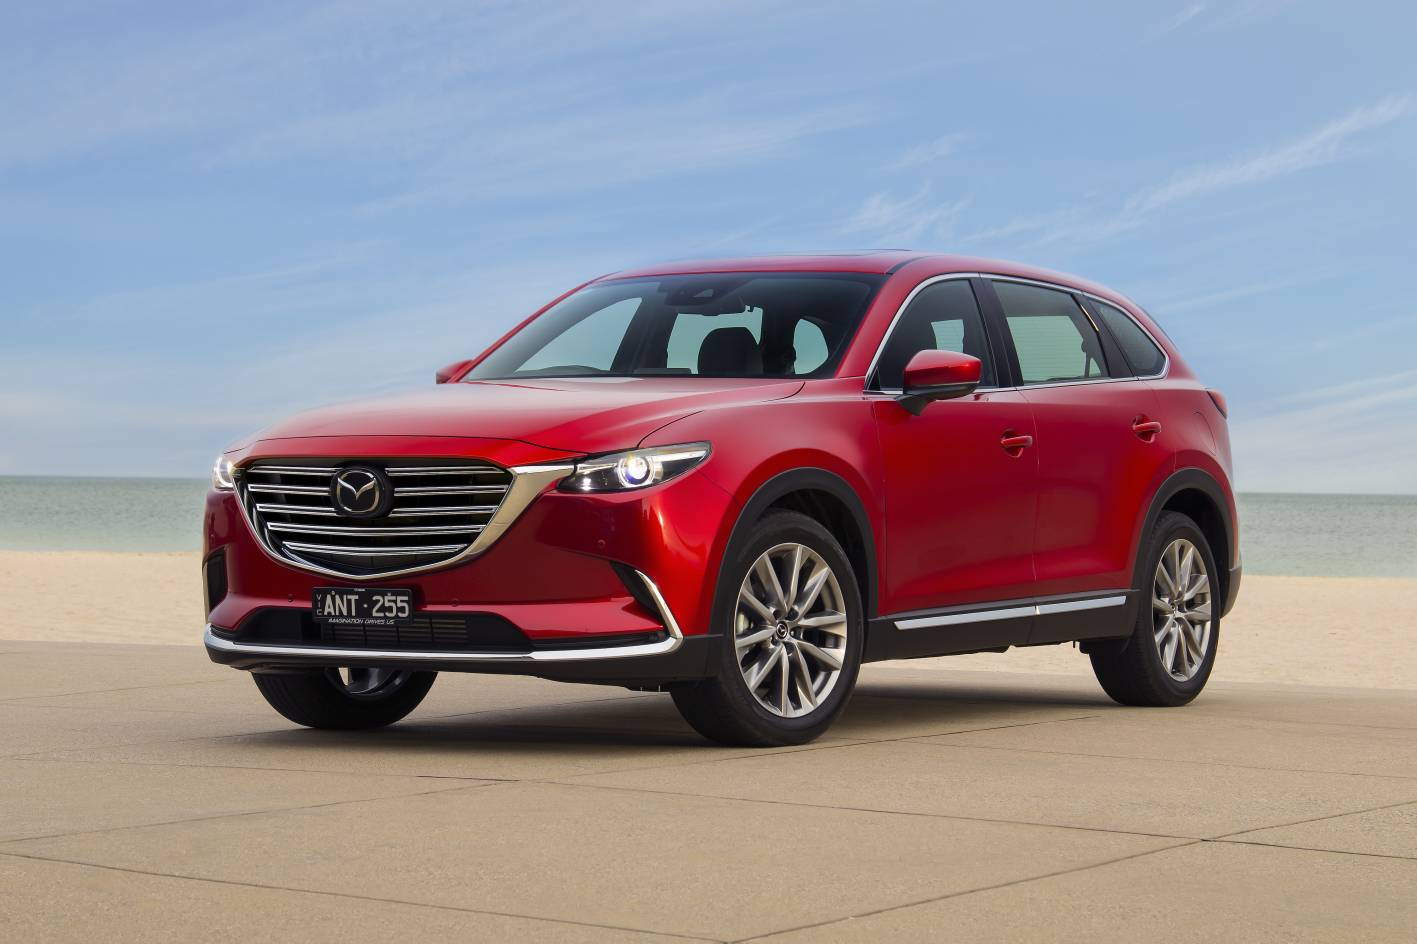 Subaru Forester 2019 Review >> Mazda CX-9 refined with G-Vectoring Control and added features - ForceGT.com